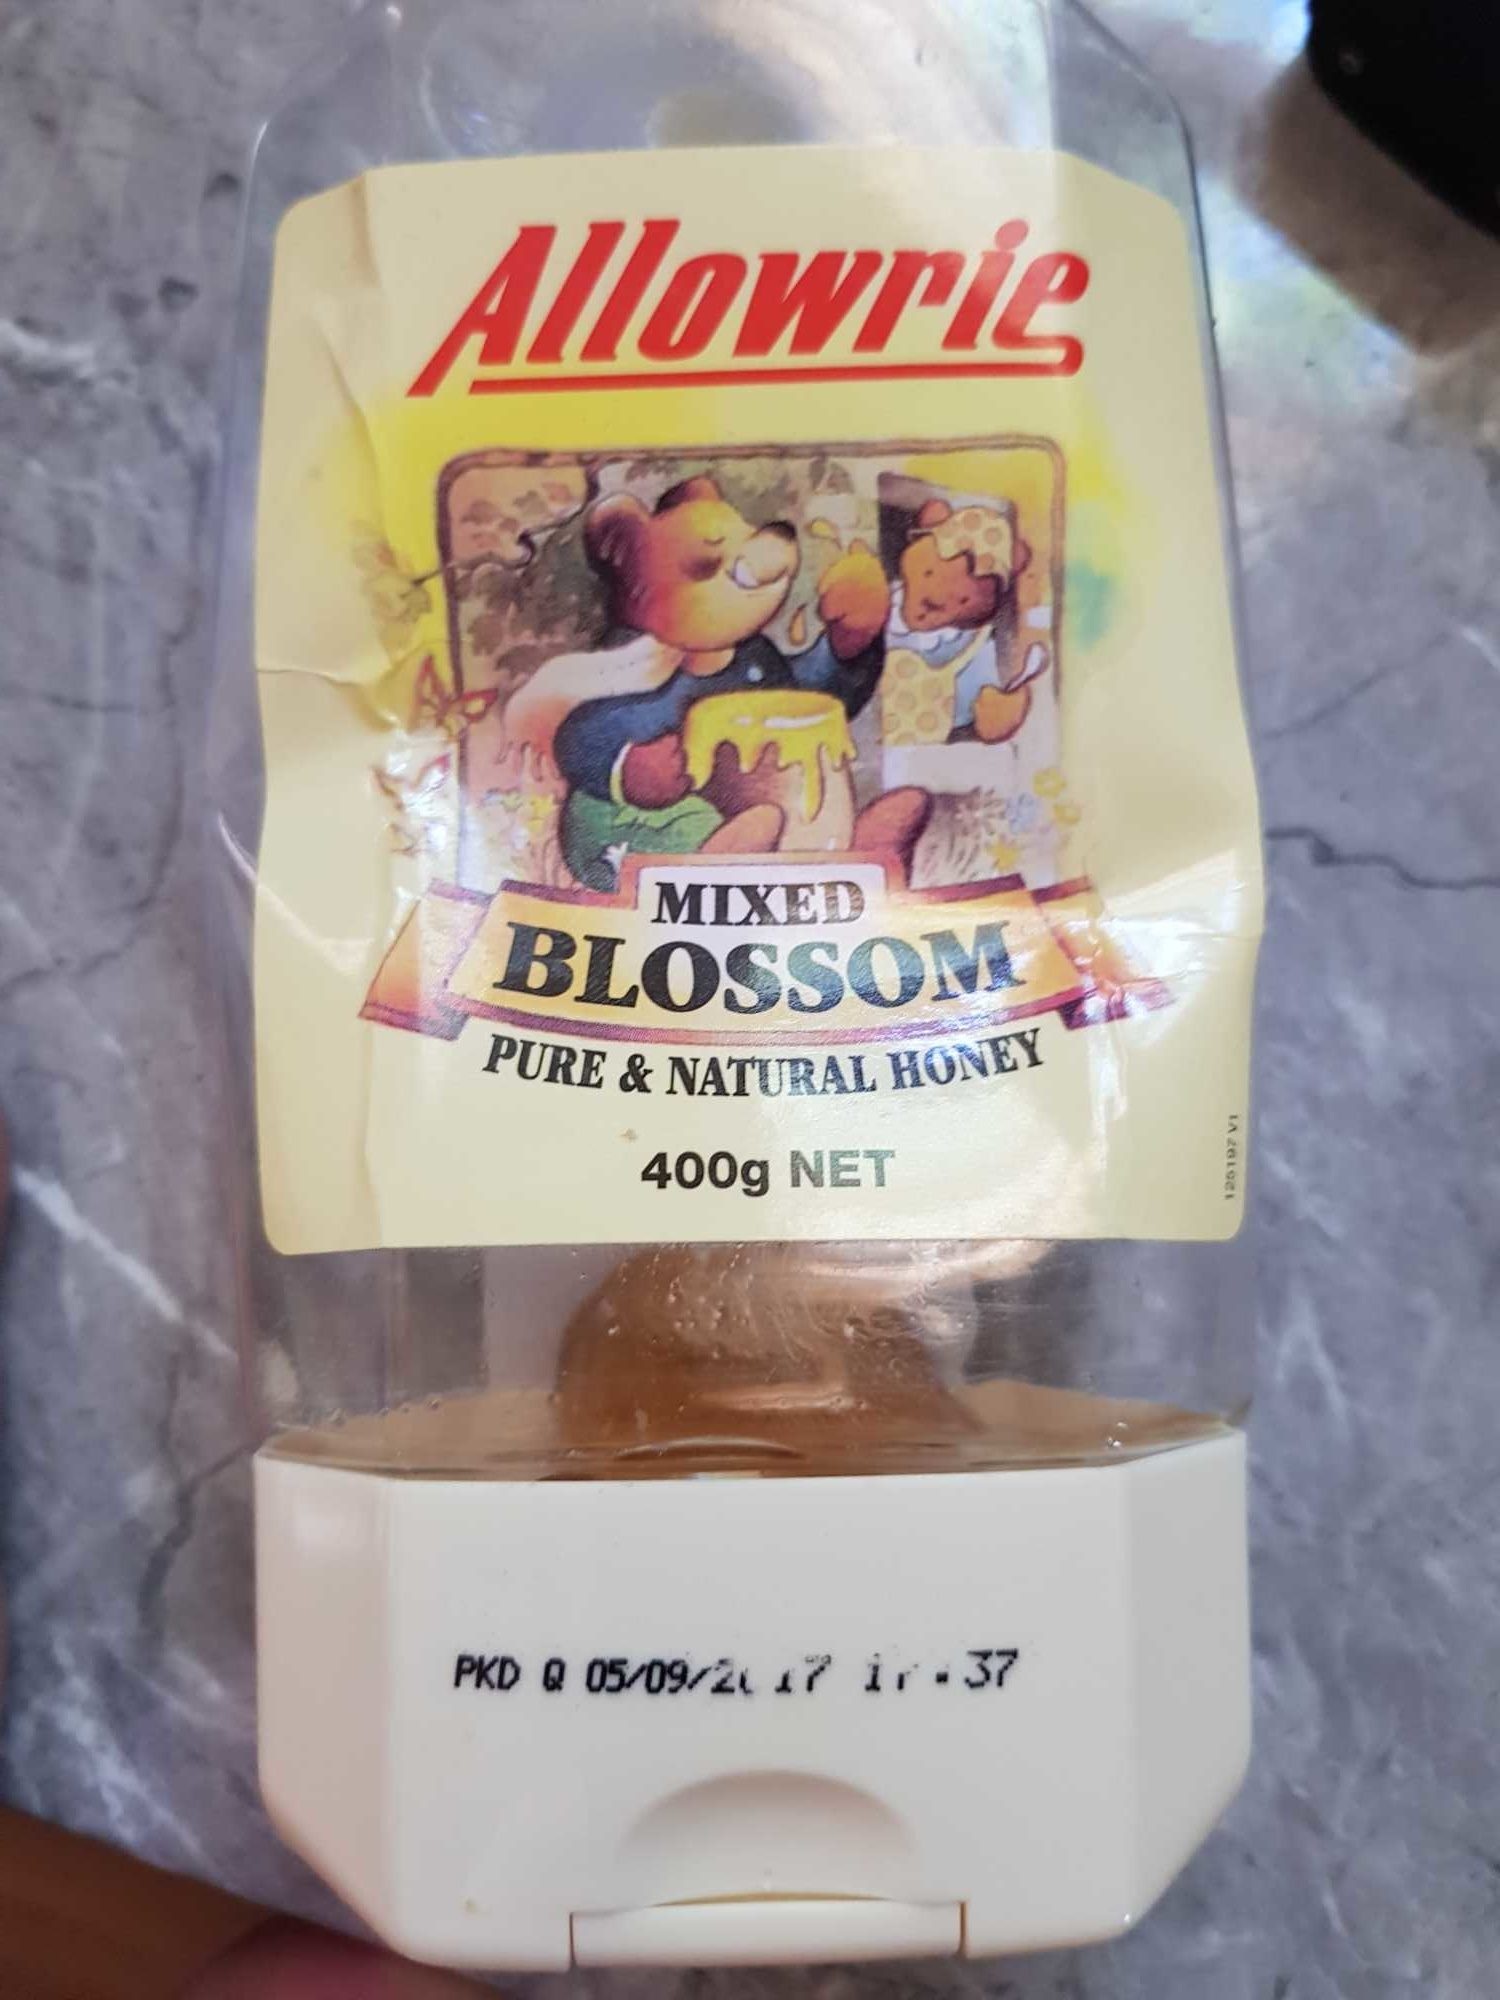 Allowrie Mixed Blossom Pure and Natural Honey - Product